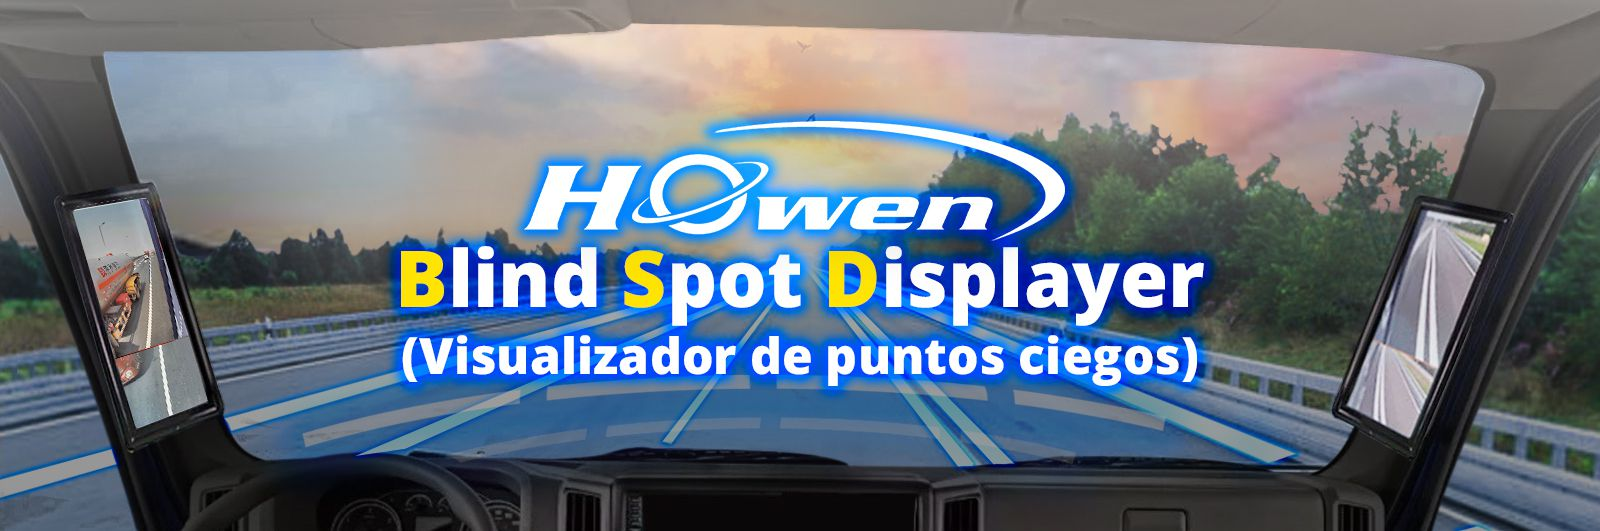 Blind-Spot-Displayer-(Visualizador-de-puntos-ciegos)